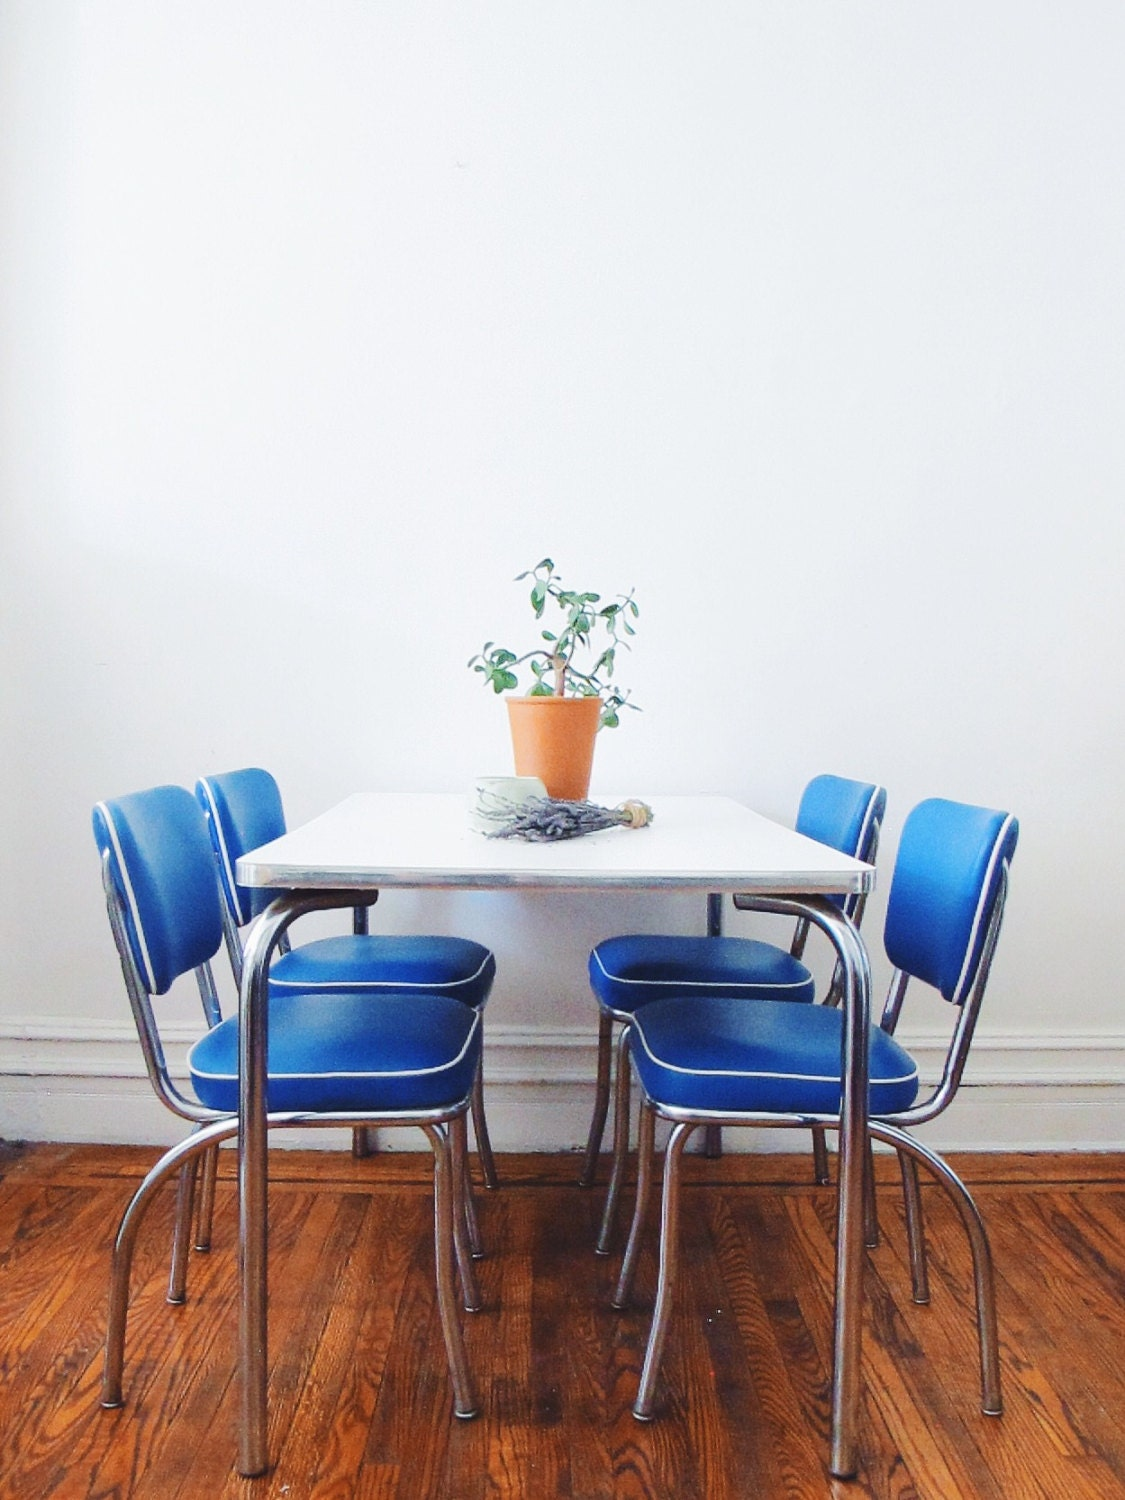 Mid Century Kitchen Chair Set Vintage Blue Chairs by